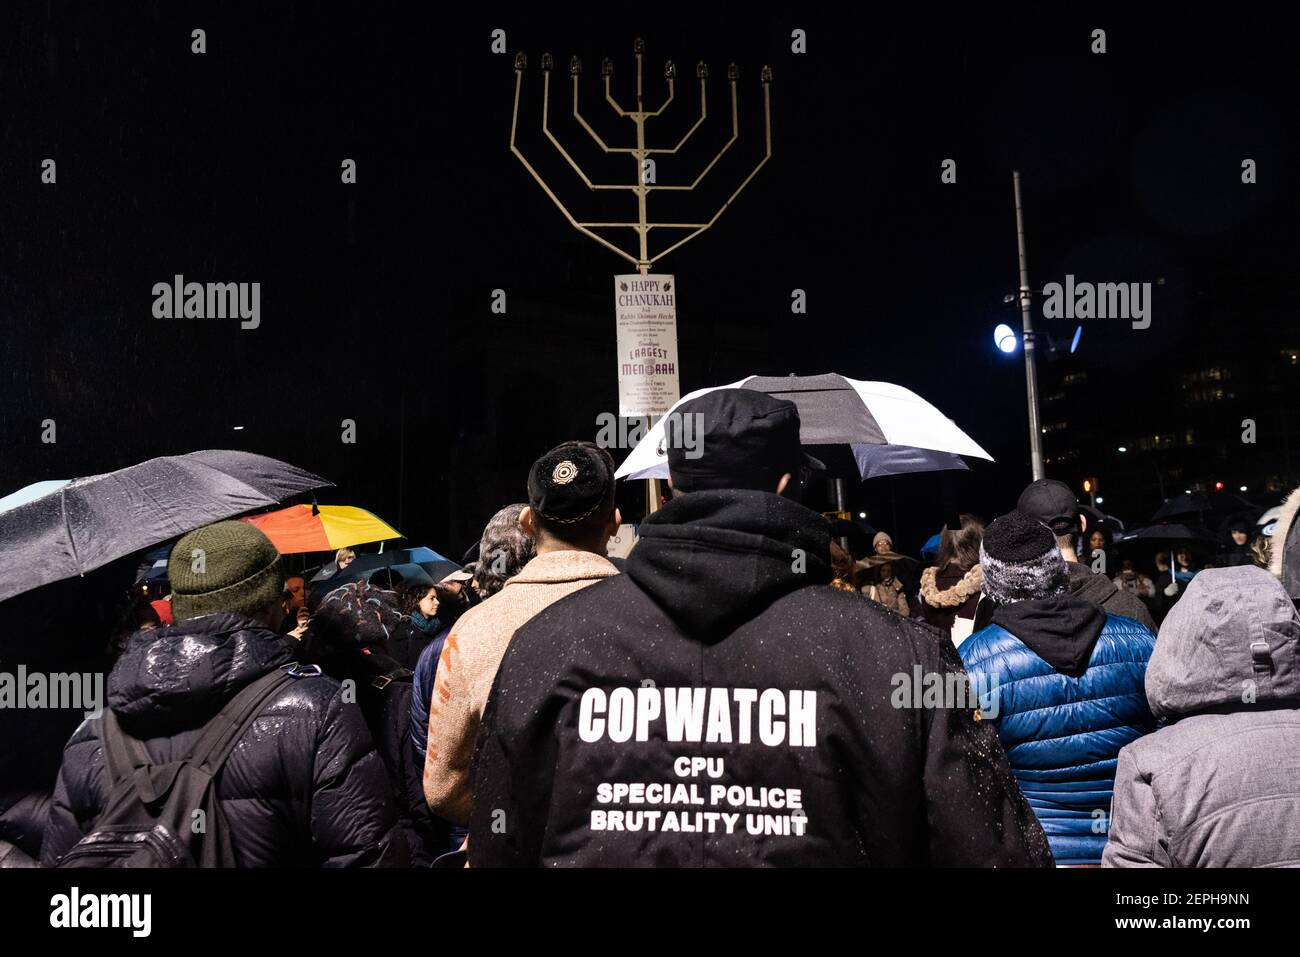 A member of Cop Watch joins New Yorkers in solidarity at the lighting of the Menorah on the 8th night of Chanukah at Grand Army Plaza in Brooklyn, New York, on December 29, 2019. (Photo by Gabriele Holtermann-Gorden/Sipa USA) Stock Photo